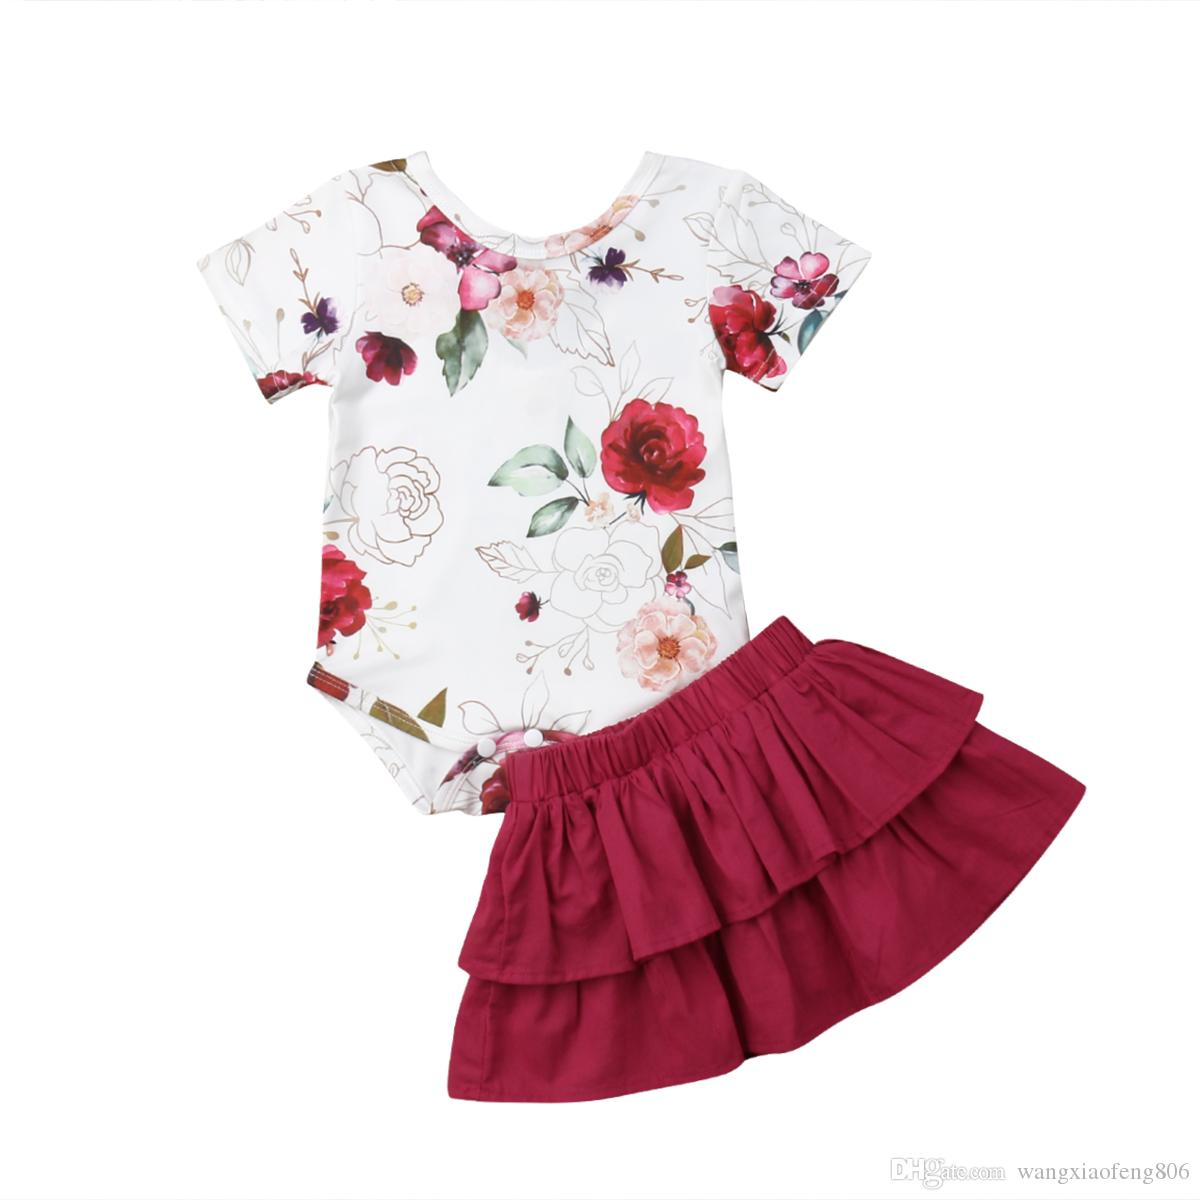 Baby Girl Clothes Set Newborn Princess Outfit Infant Floral Bodysuit+Tutu Mini Skirt Toddler Kid Summer Clothing Set0-18M